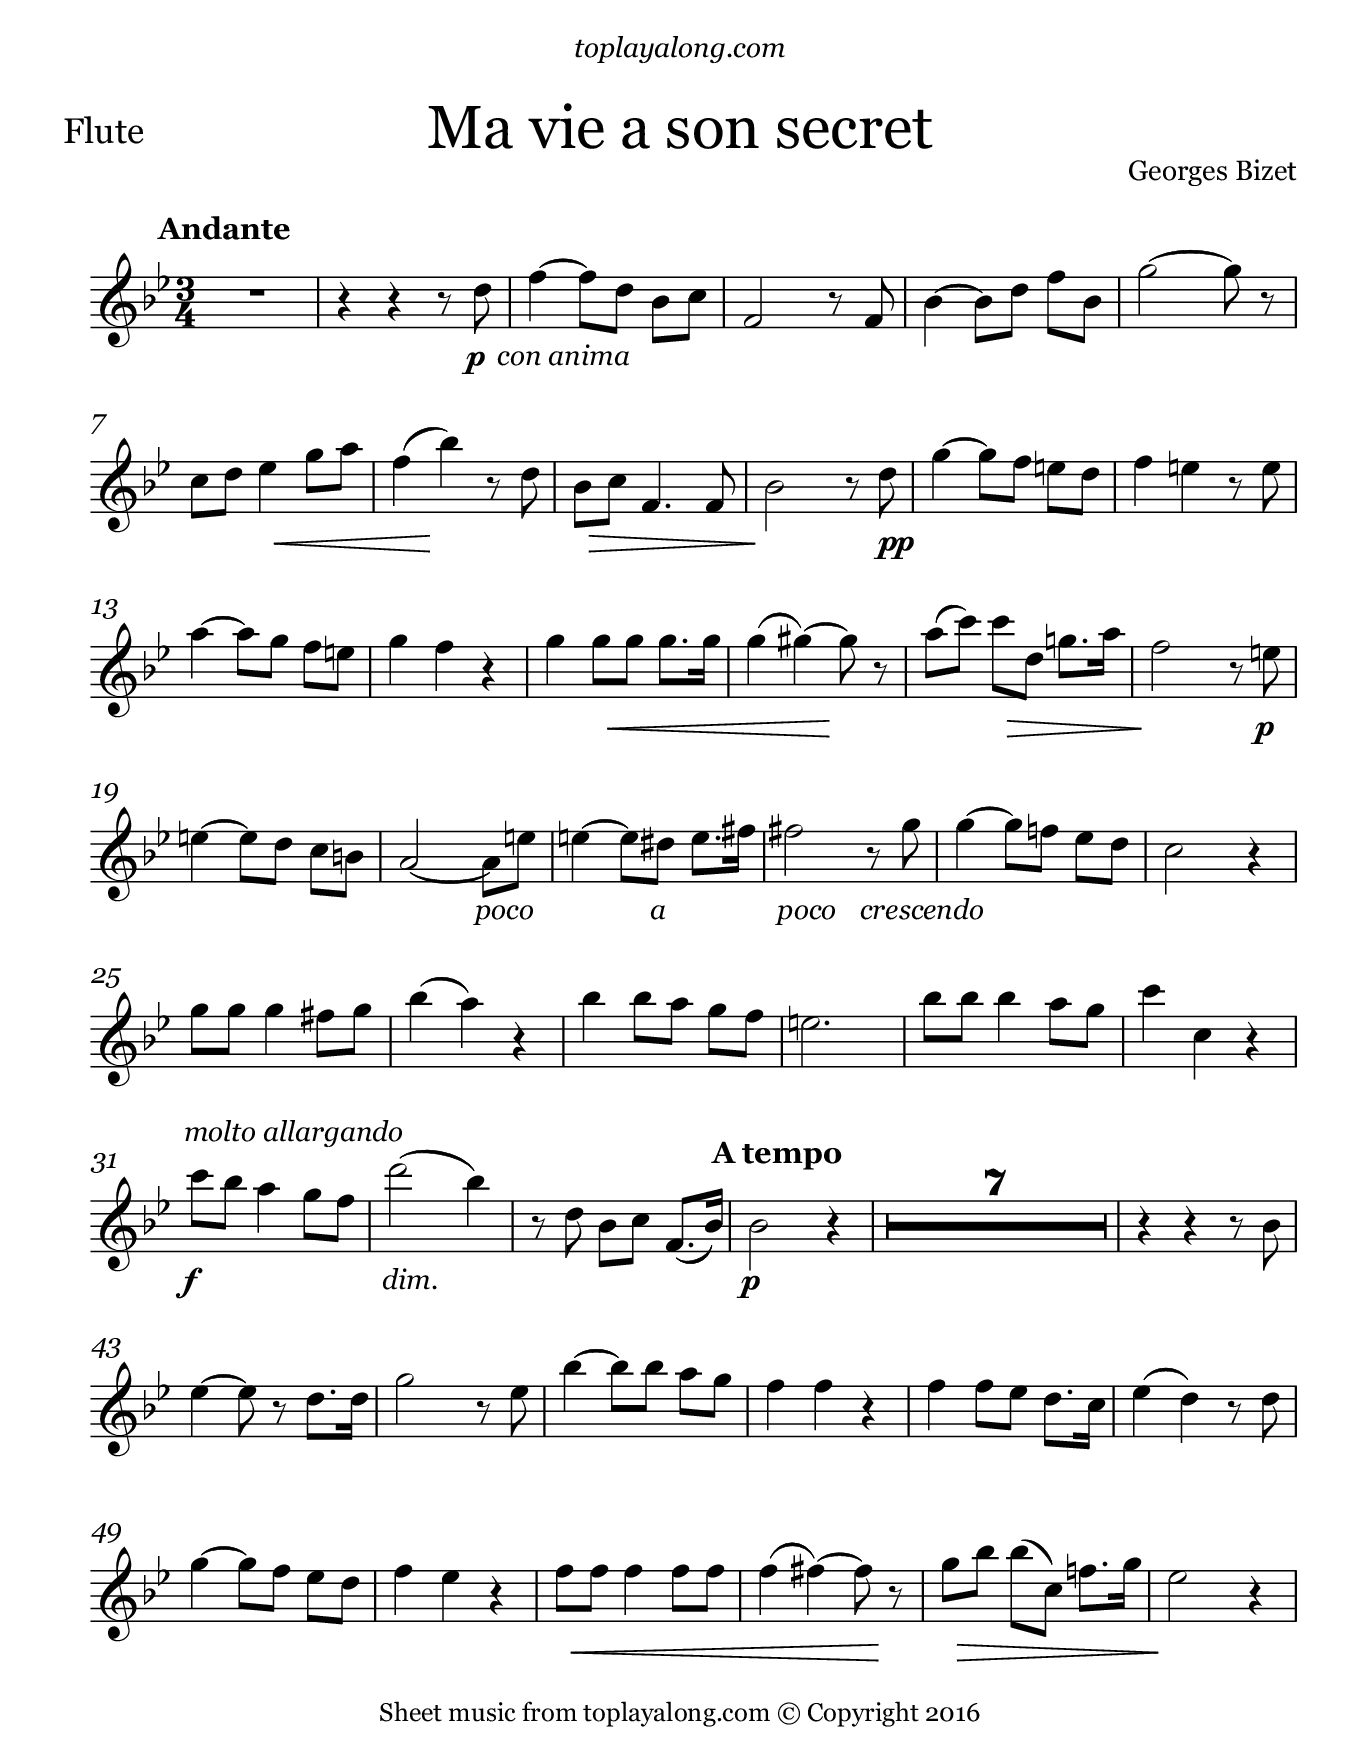 Ma vie a son secret by Bizet. Sheet music for Flute, page 1.